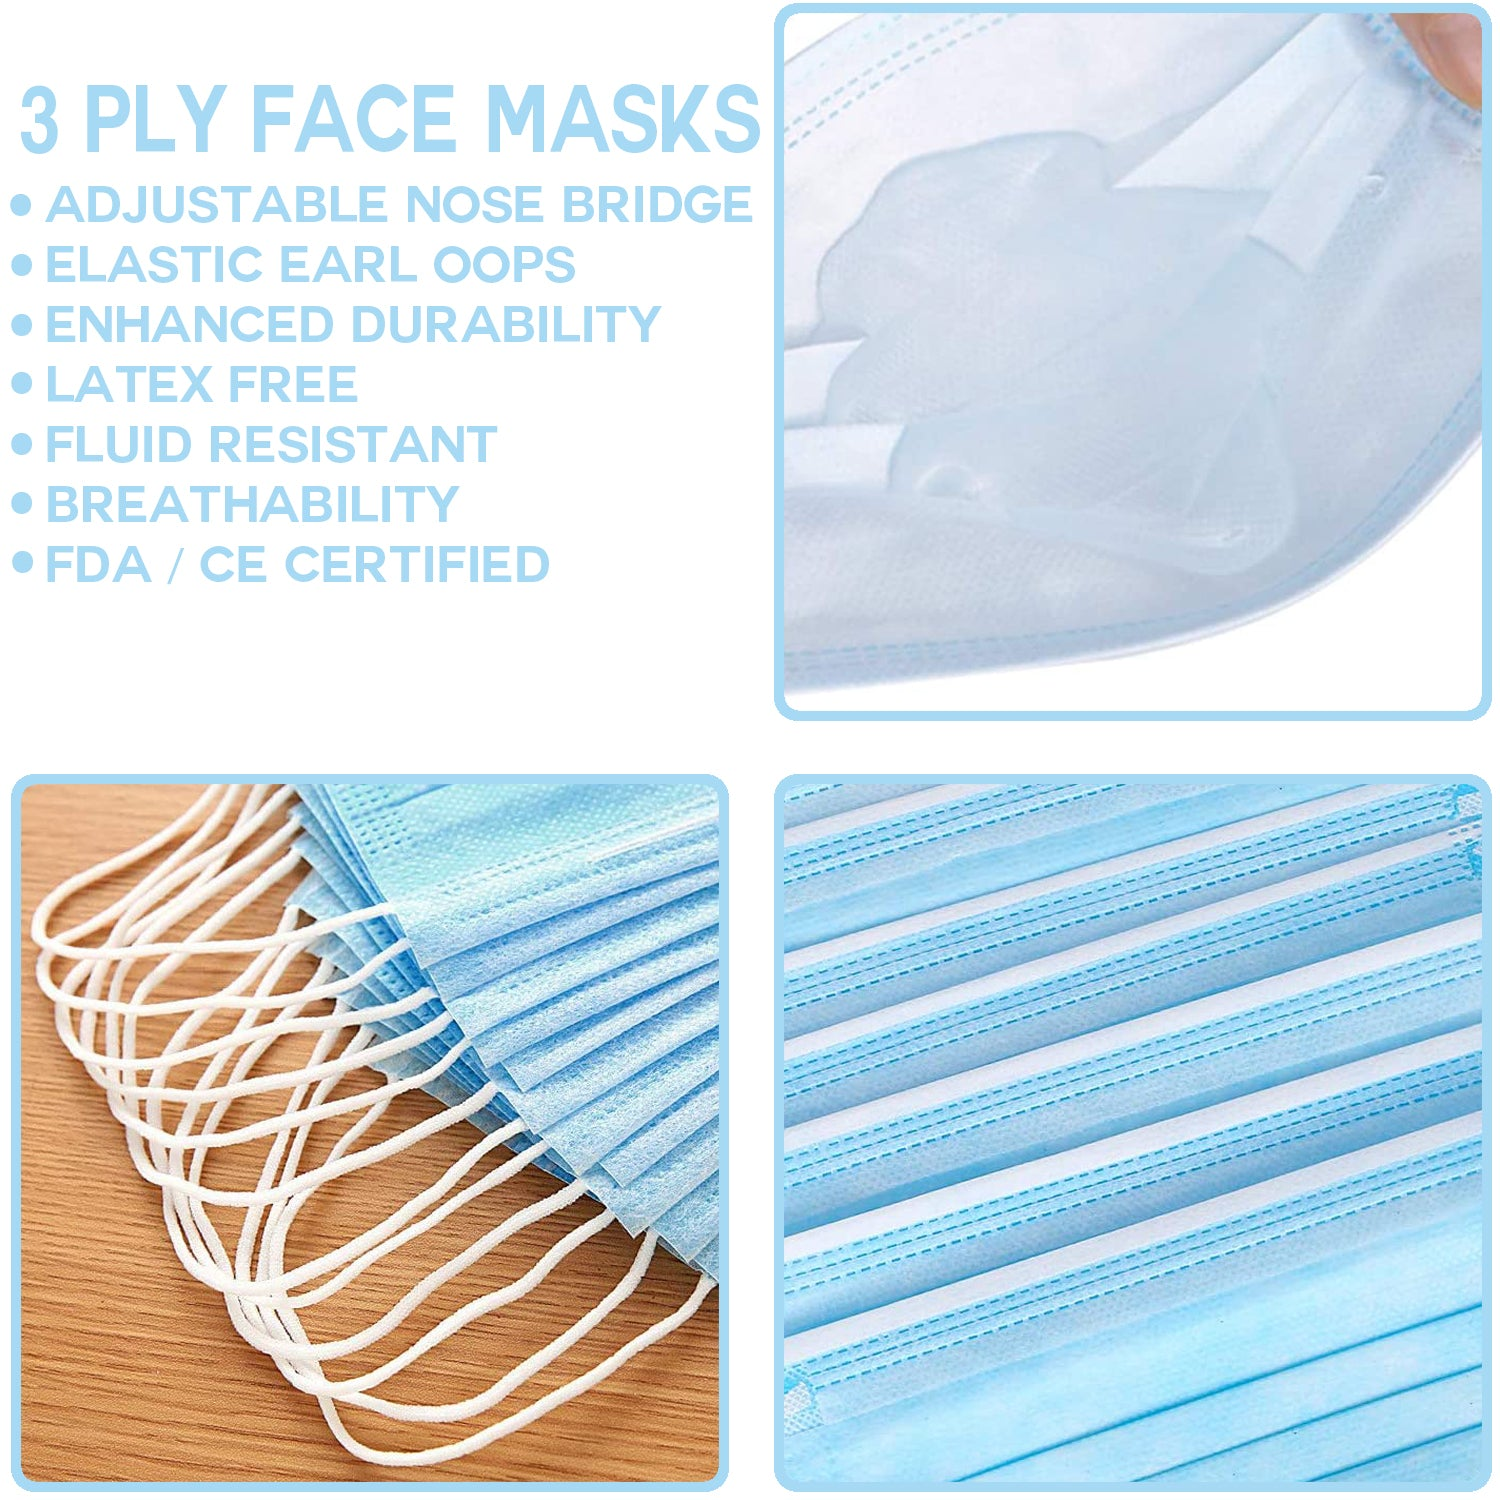 "REST Safeguard 3 Ply Disposable Facemask - 50 Piece Qty ""BRADS DEAL 50% DISCOUNT AUTOMATICALLY APPLIED IN CART"""